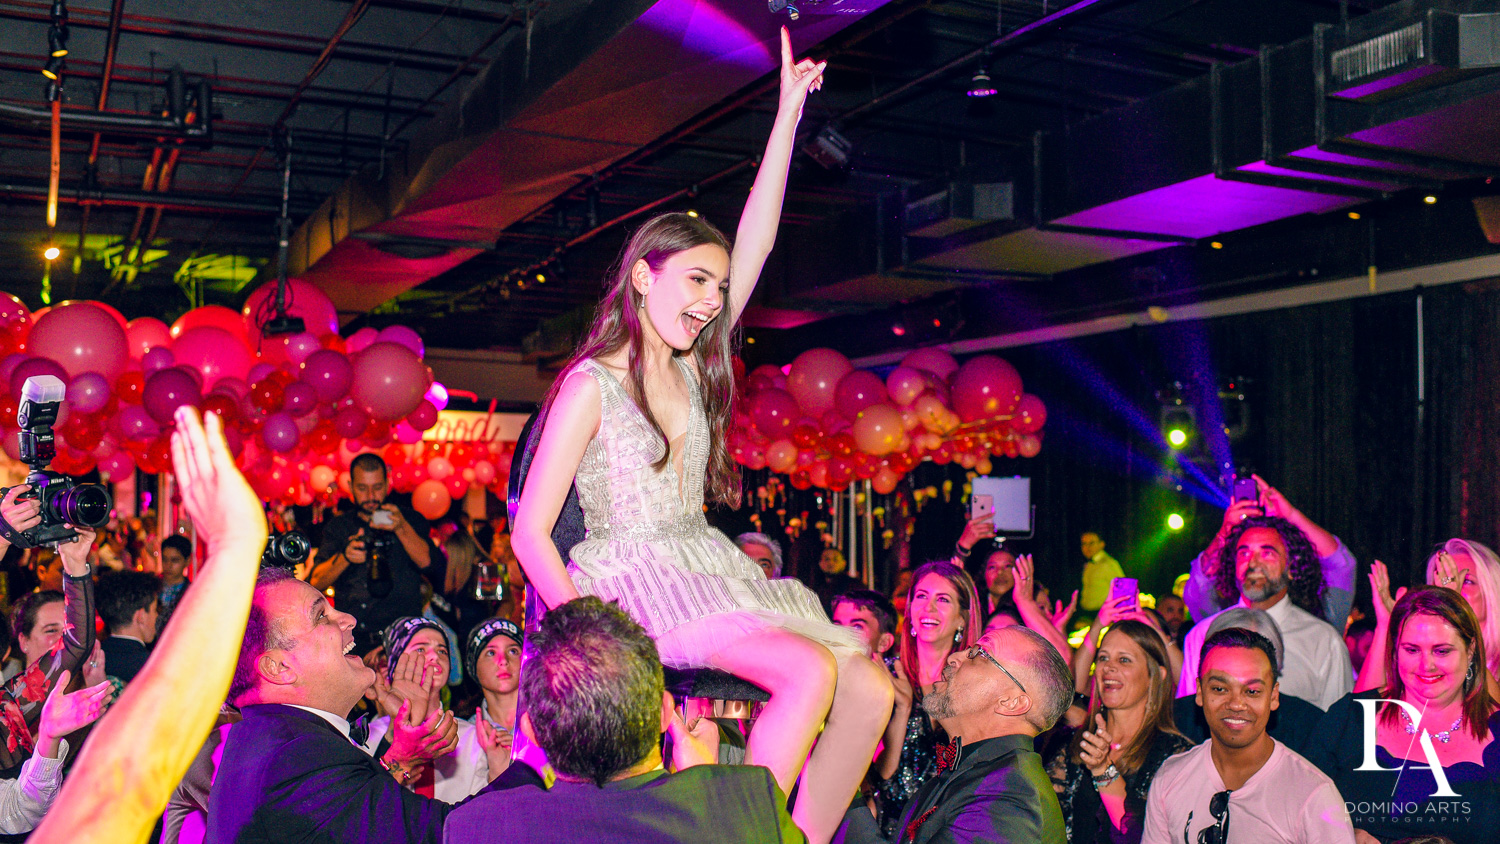 hora at Fashion Theme Bat Mitzvah at Gallery of Amazing Things by Domino Arts Photography